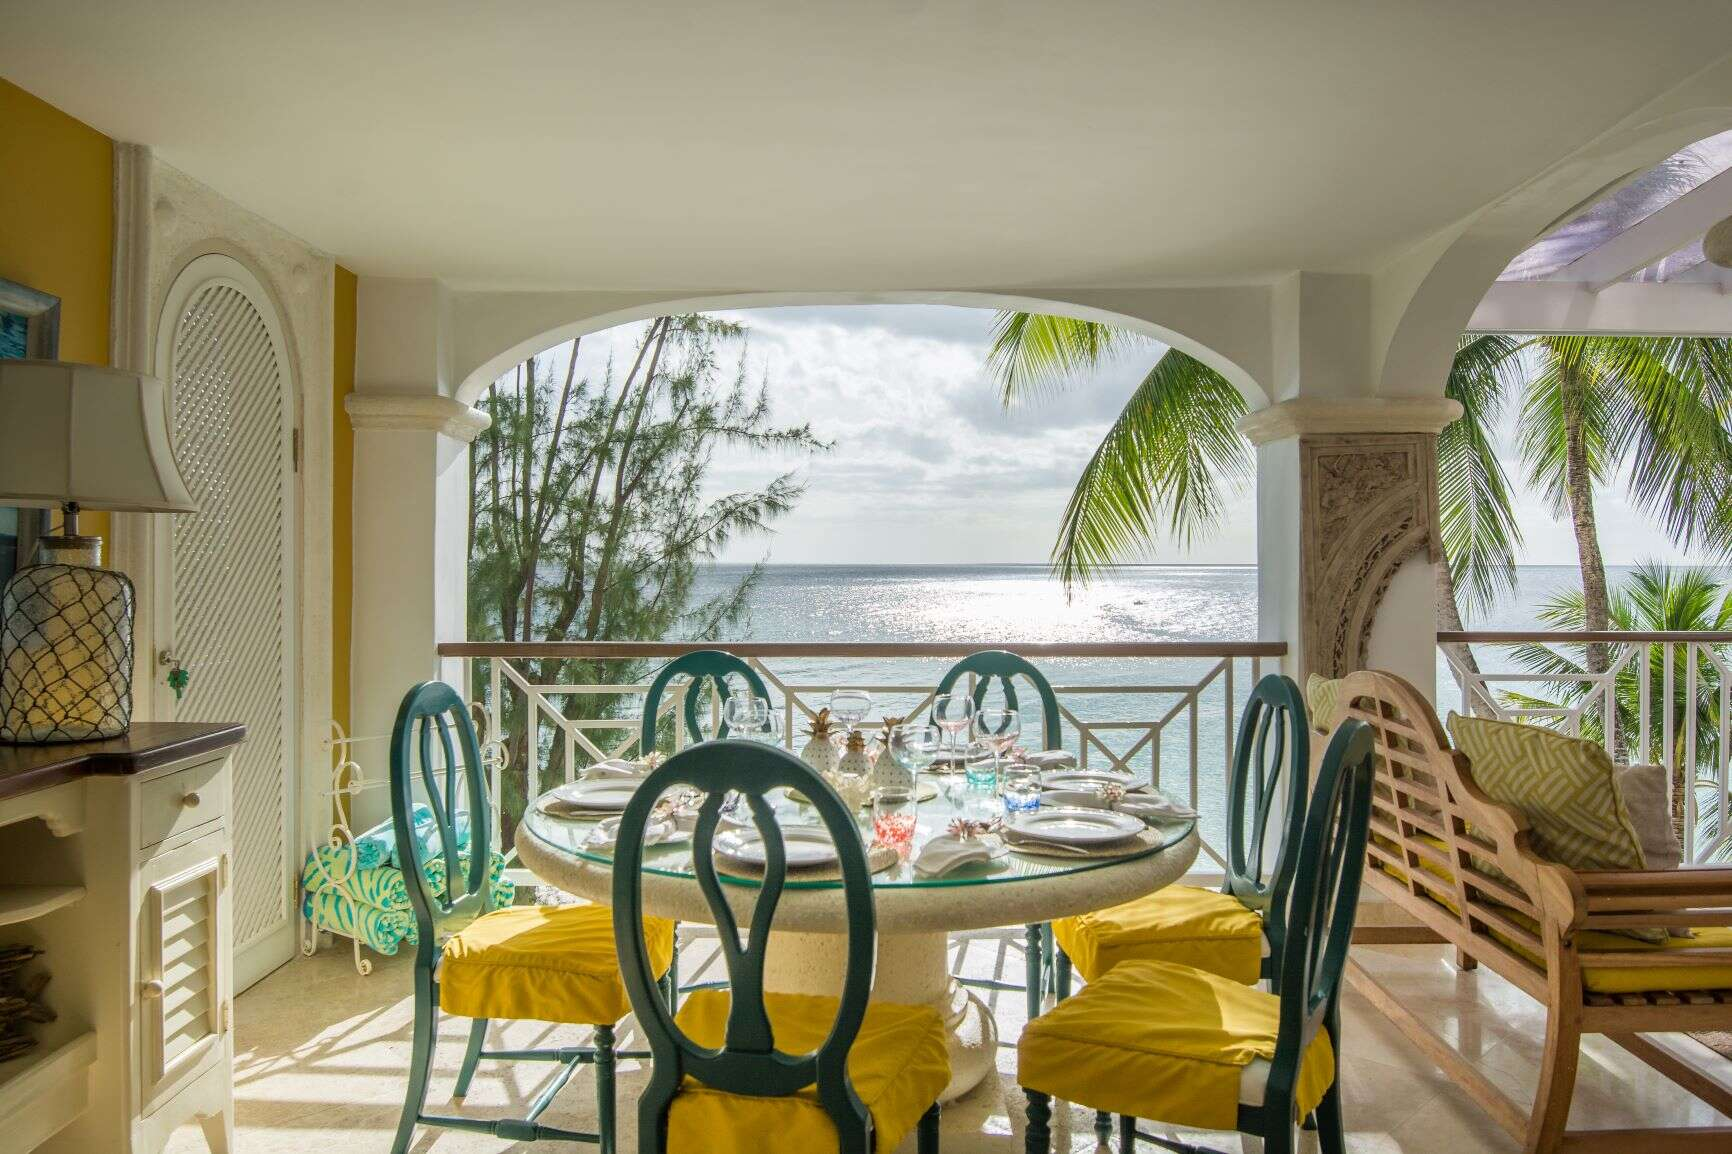 Luxury villa rentals caribbean - Barbados - St james - Holders hill - Old Trees 204 - Image 1/18